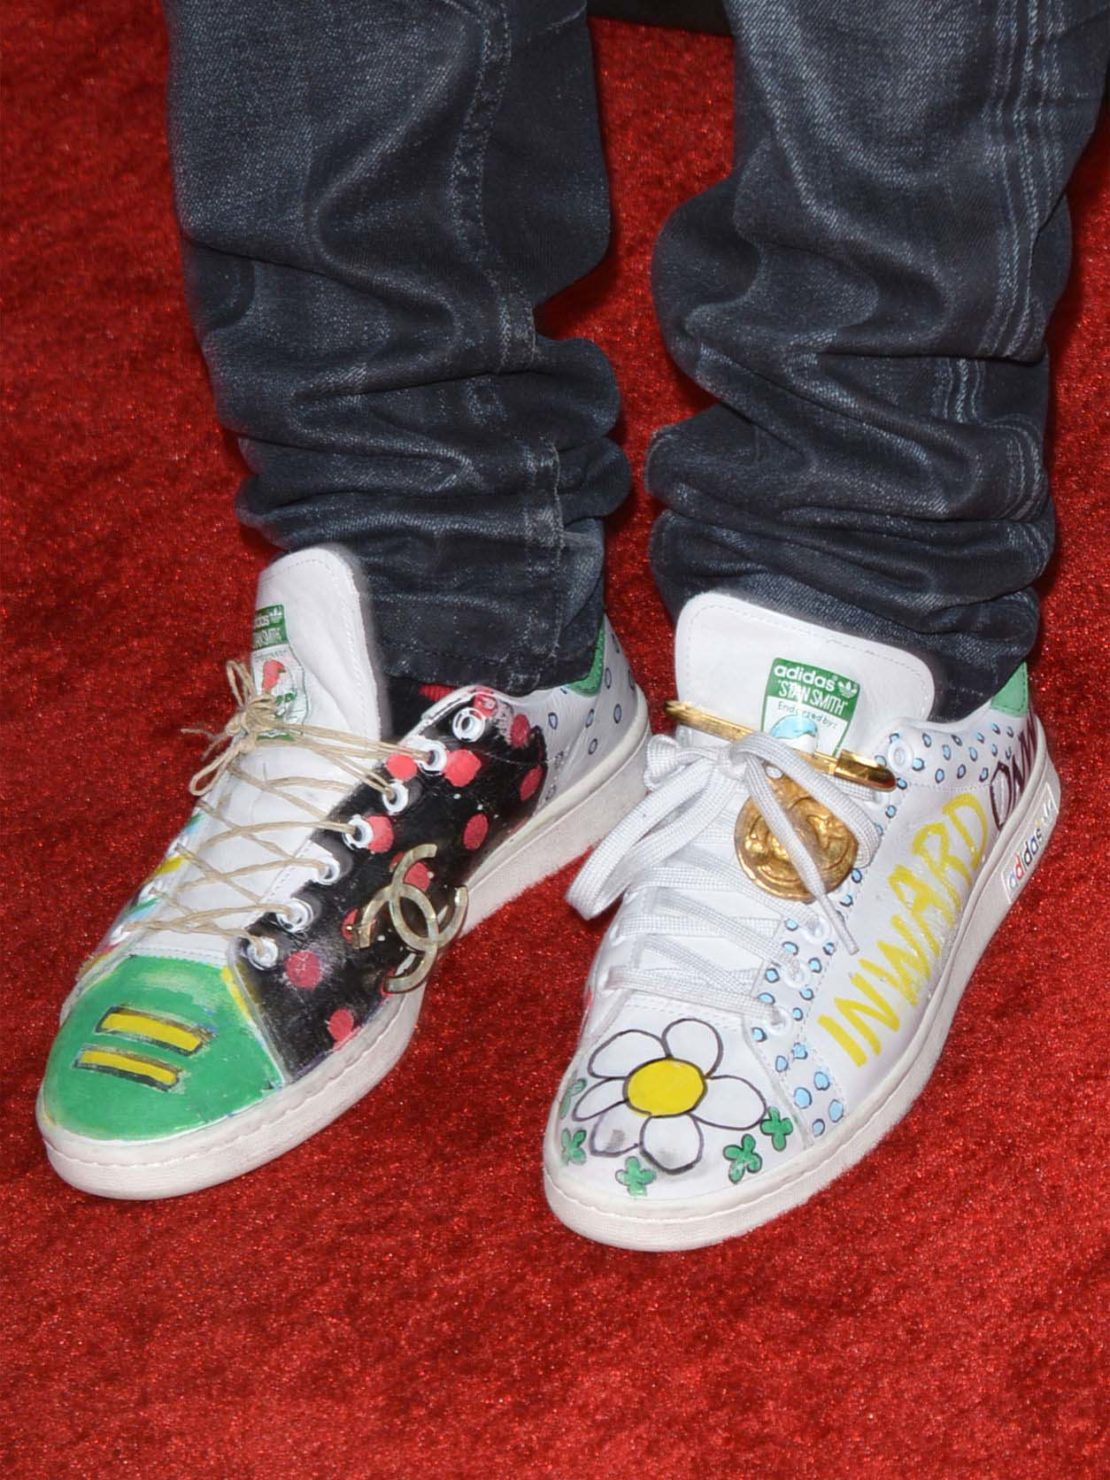 Limited edition Stan Smith shoes customised by Pharrell Williams